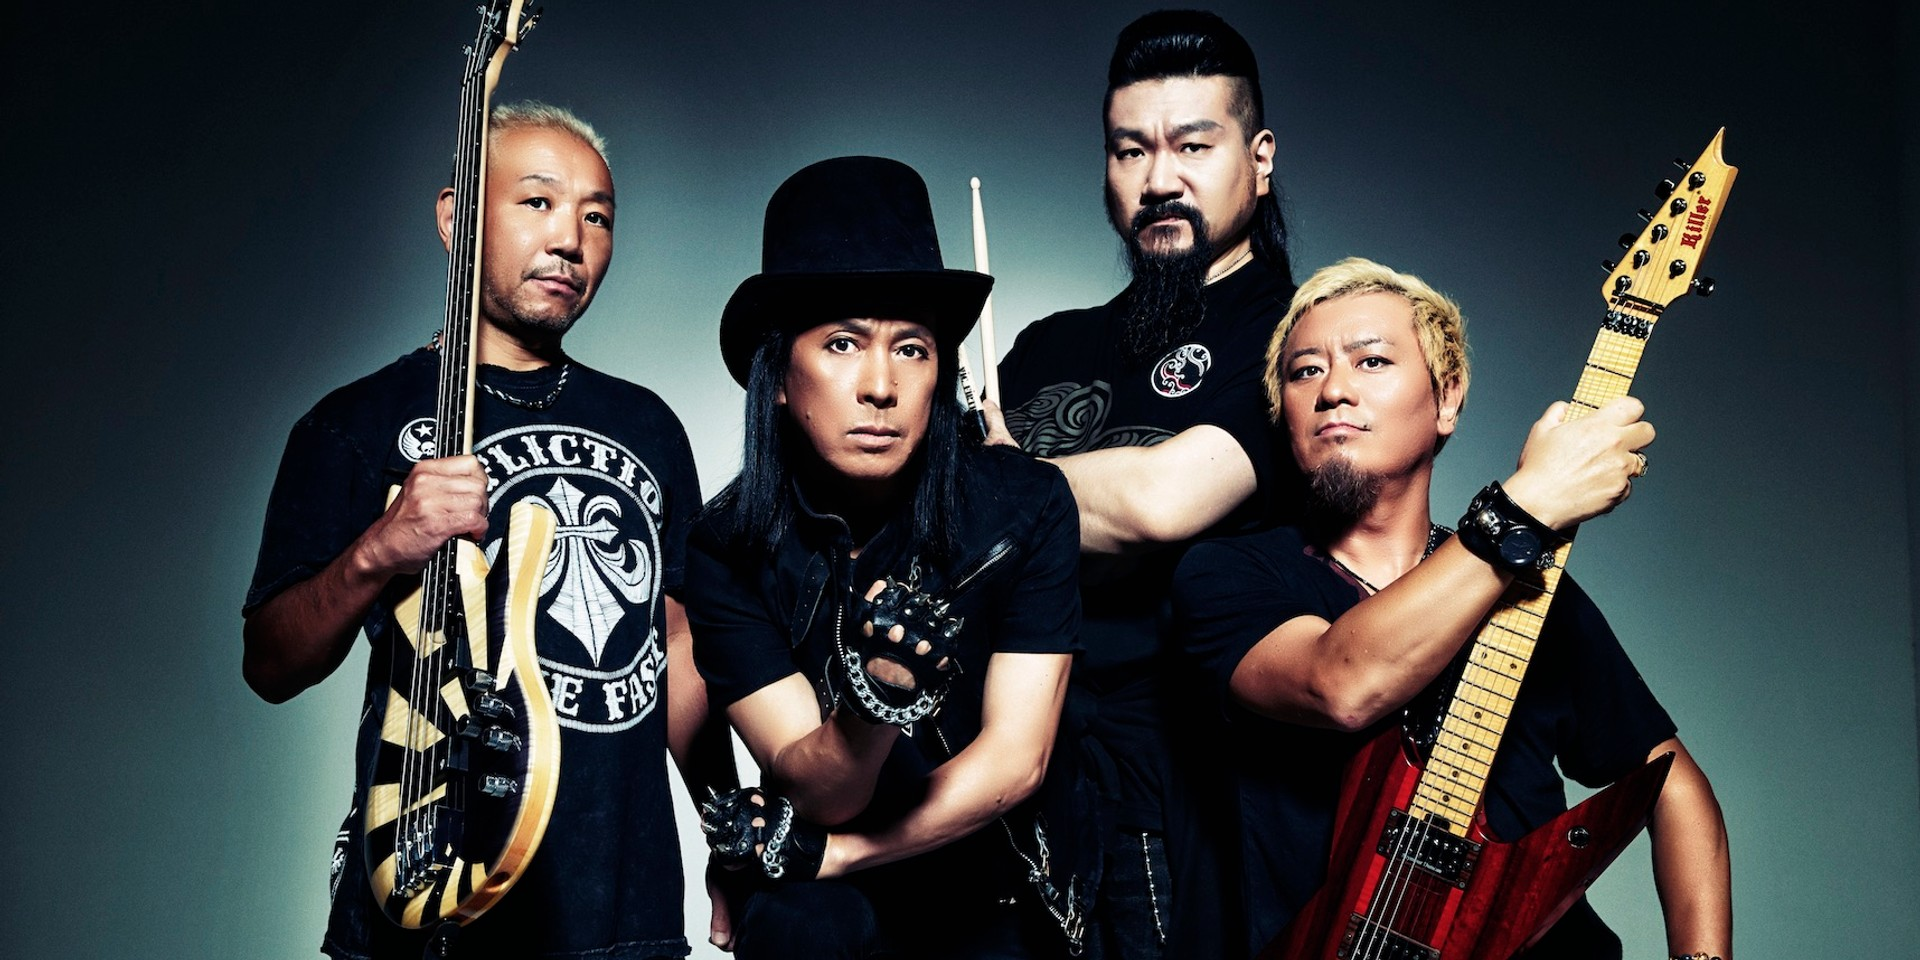 Japanese heavy metal band Loudness to perform in Singapore this June